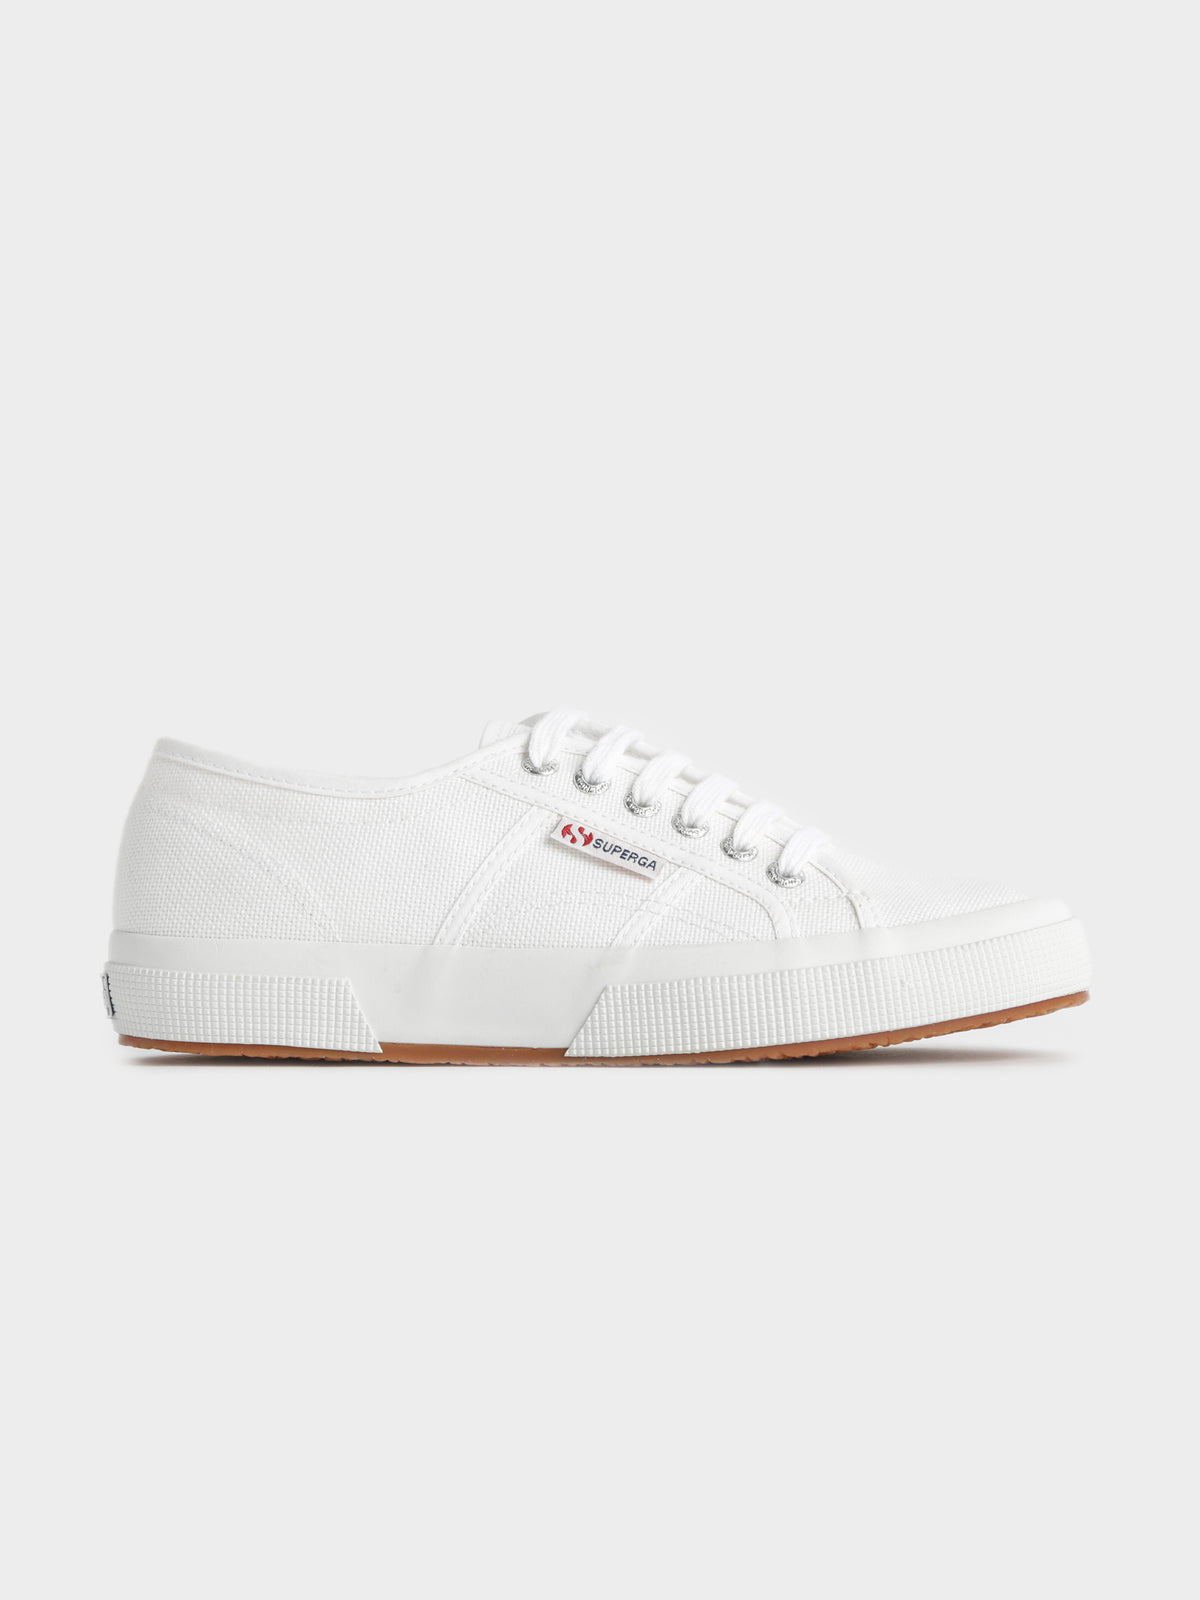 Unisex 2750 Cotu Classic Sneaker in White Canvas